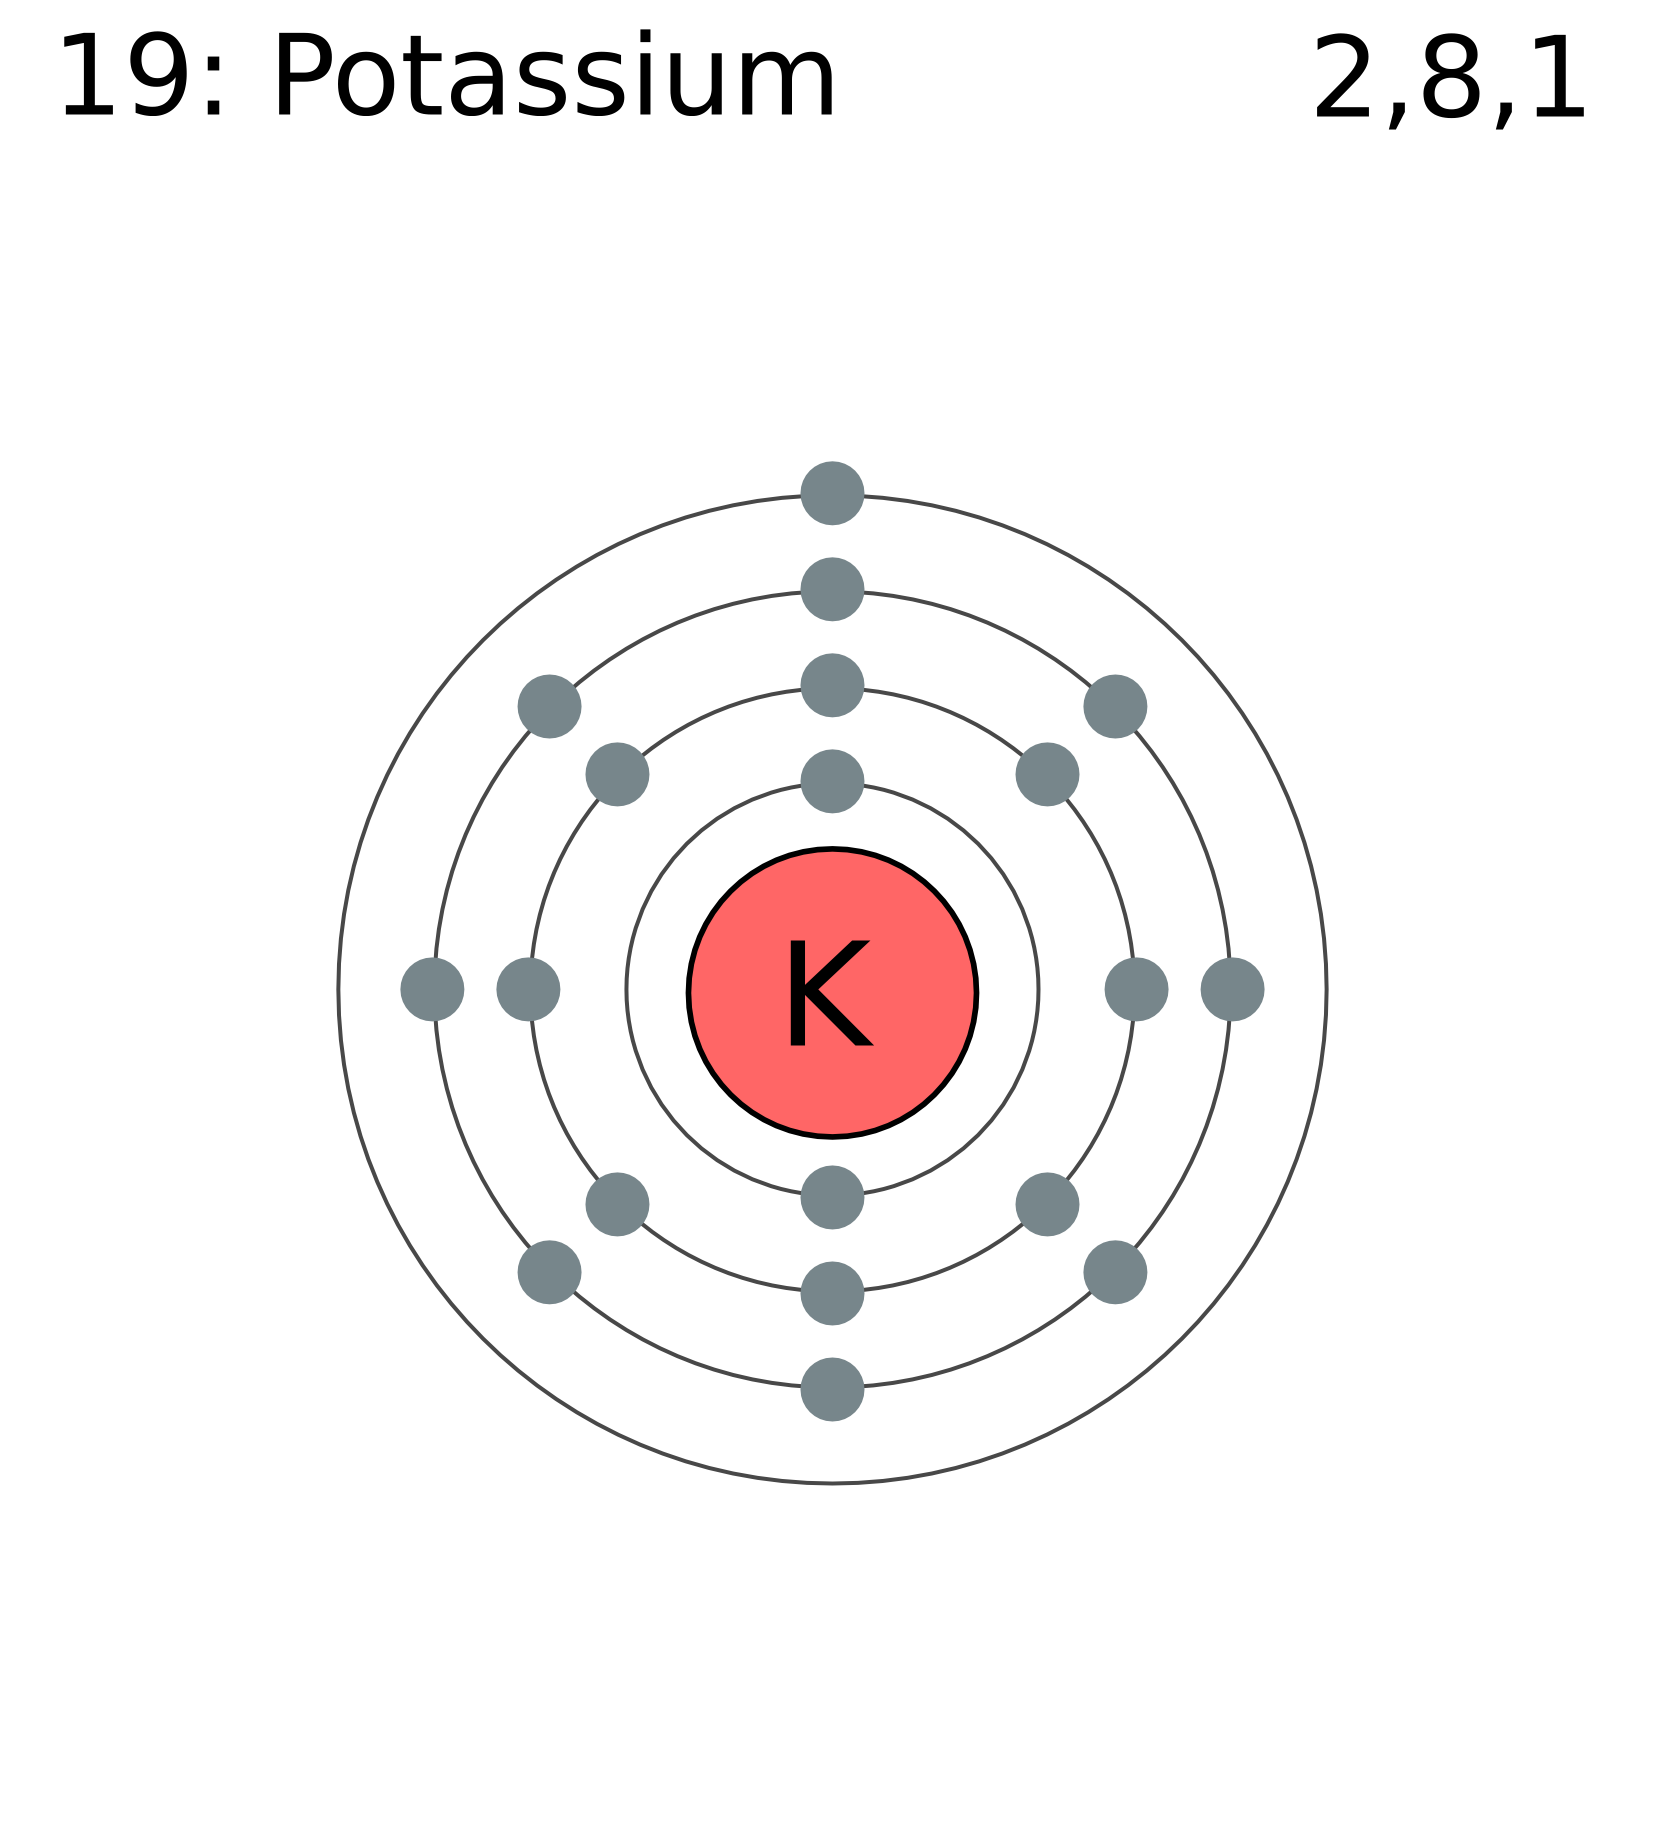 Bohr diagram k collection of wiring diagram bohr diagram k images gallery ccuart Choice Image